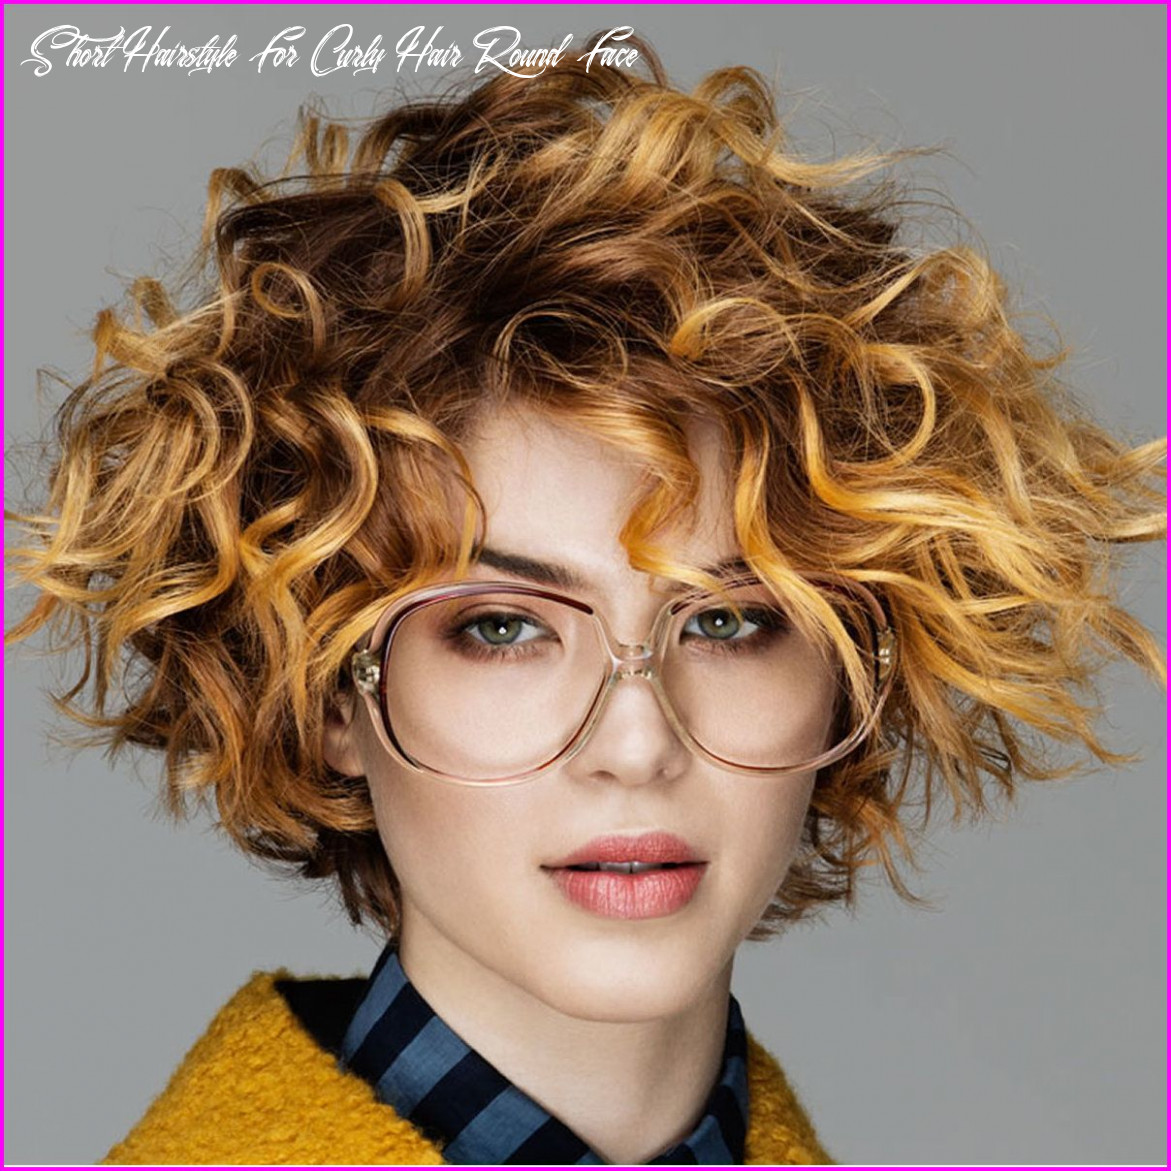 For curly hair & round face 11 | short curly hairstyles for